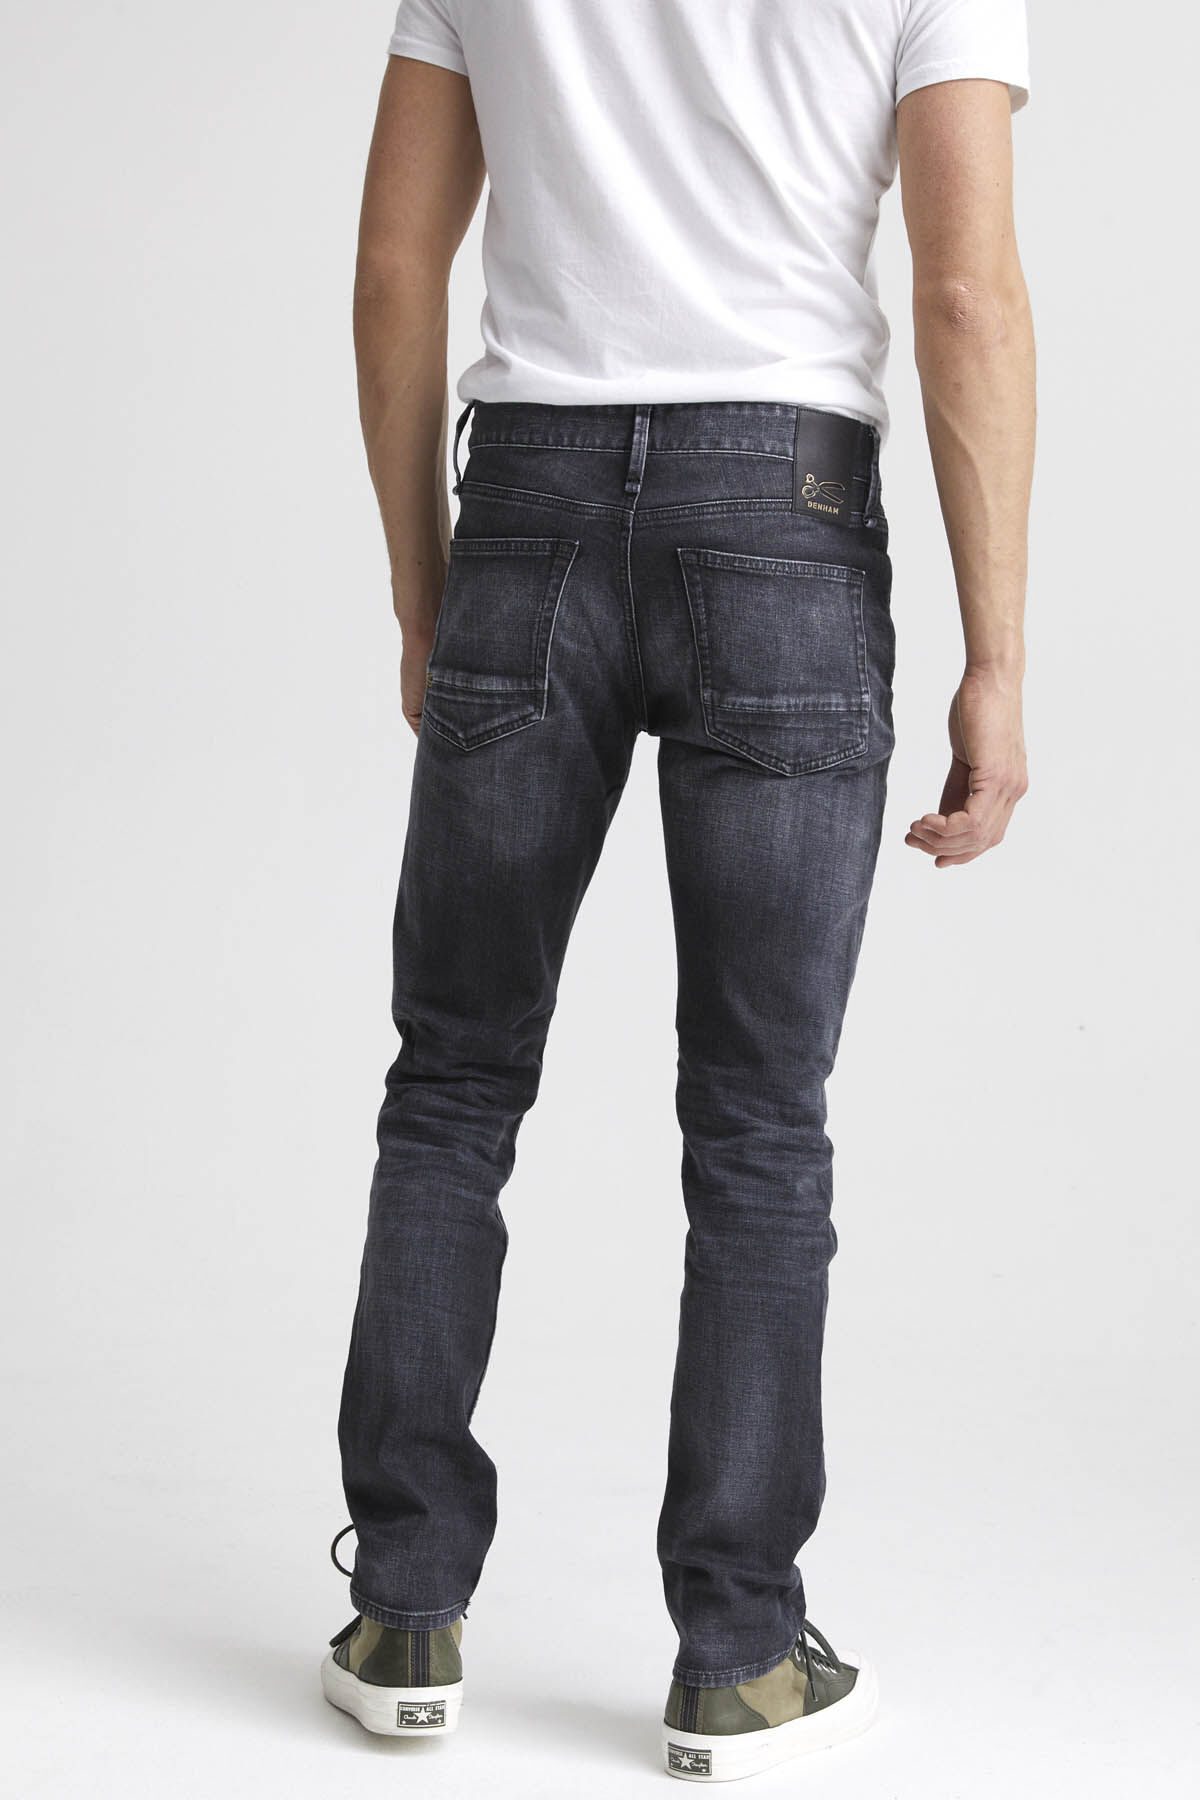 RAZOR Lefthand Denim - Slim Fit